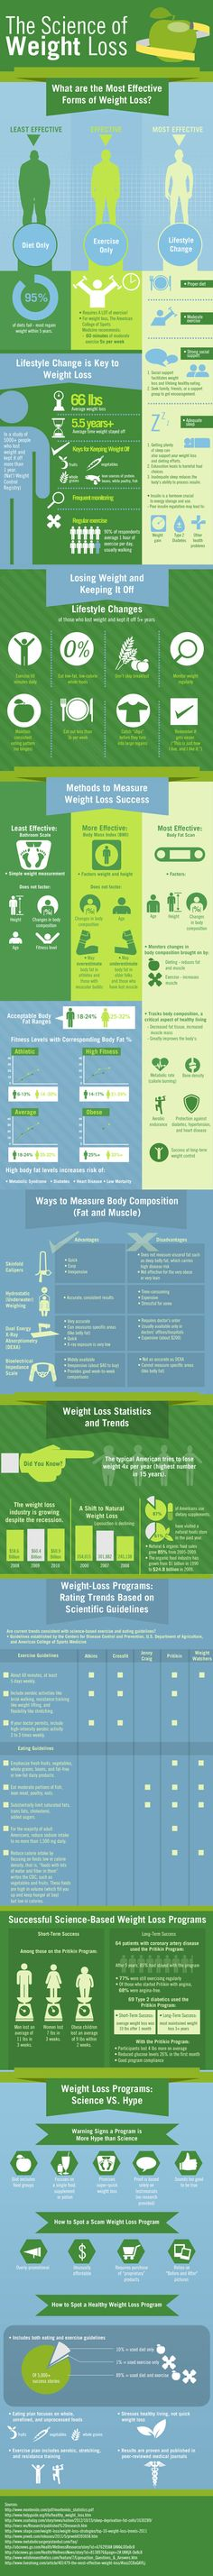 The Science of #WeightLoss #Infographic